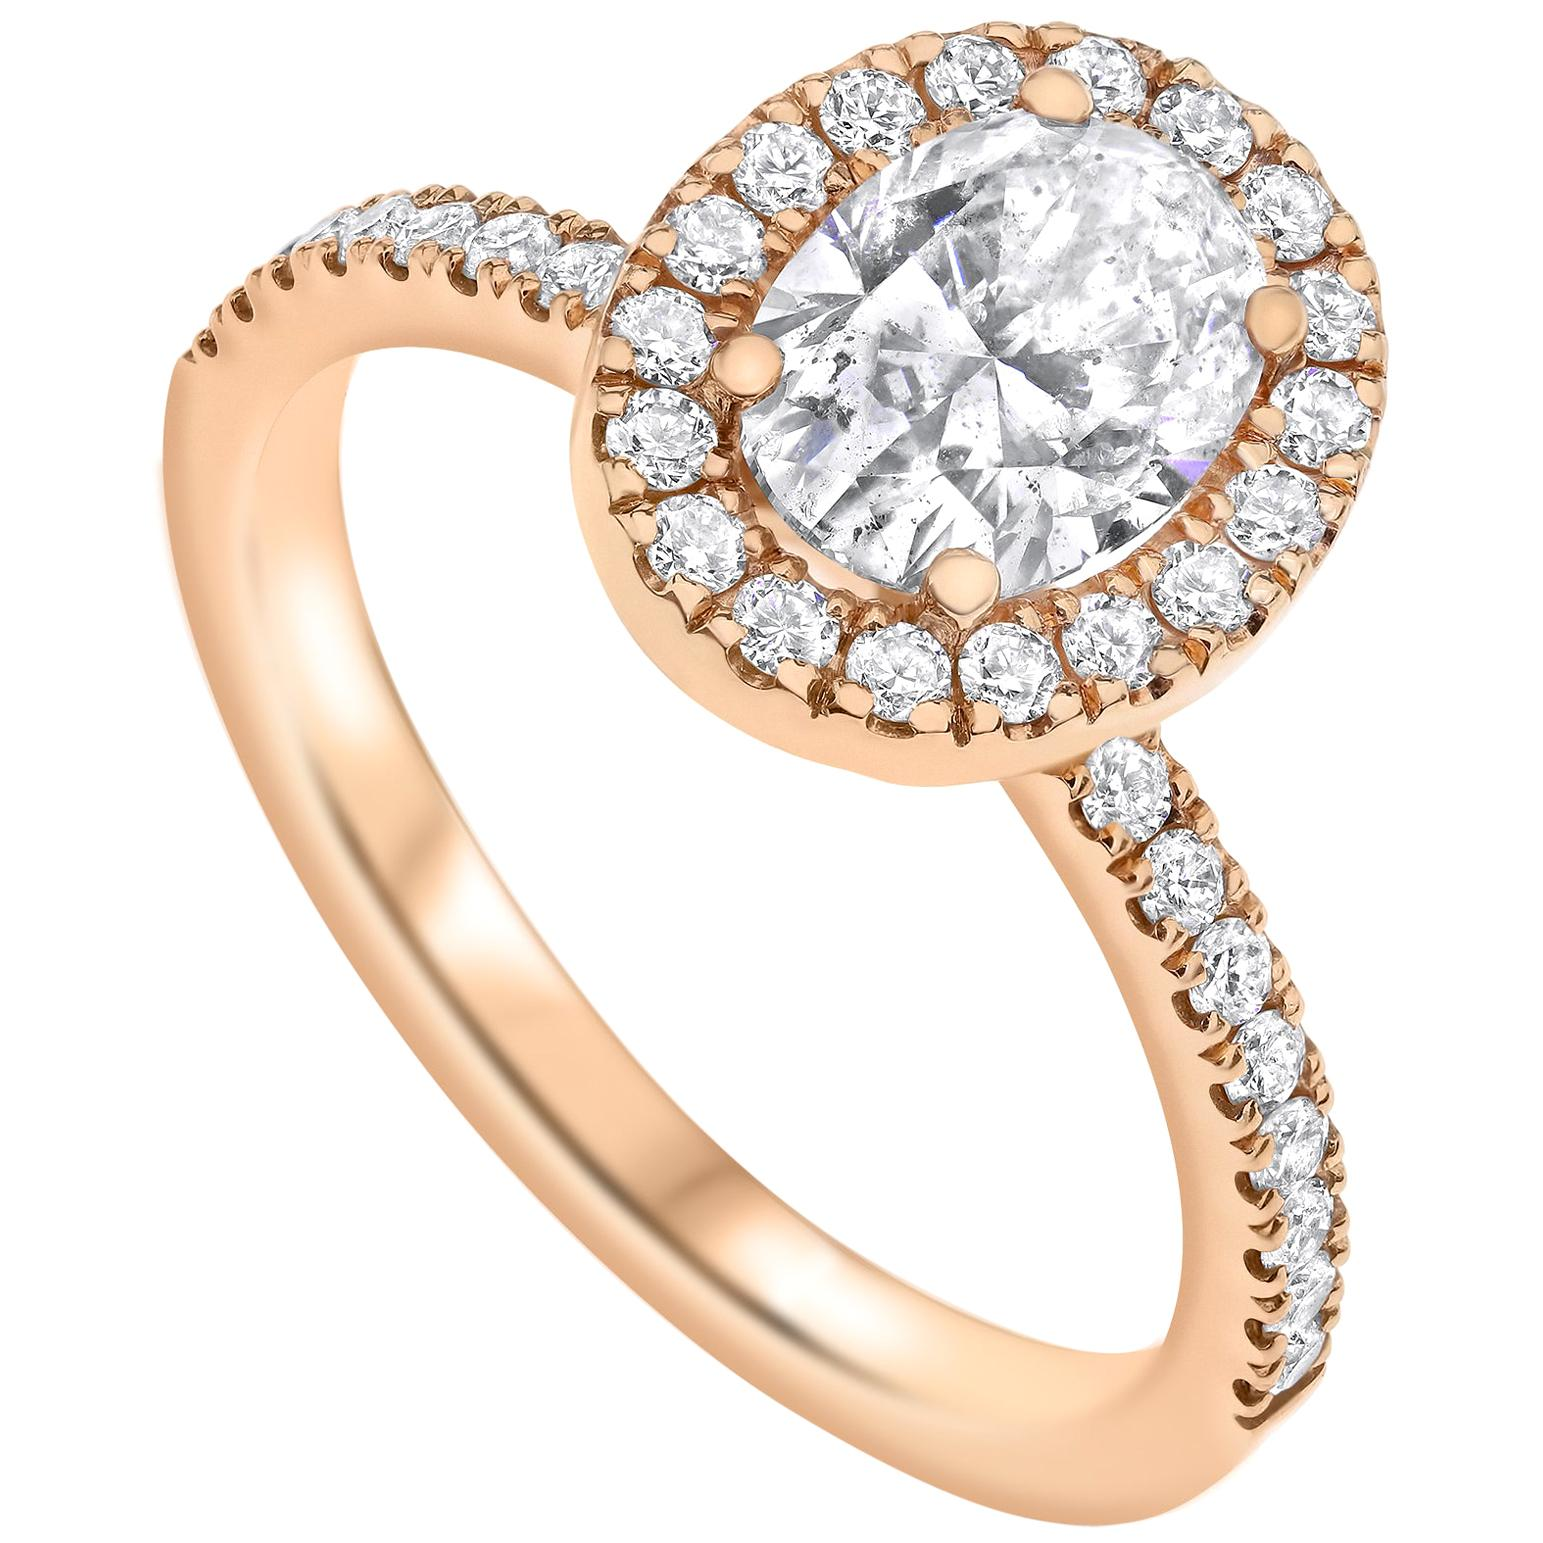 Shlomit Rogel, 1 Carat Oval Shaped Diamond Halo Ring in 14 Karat Rose Gold EGL